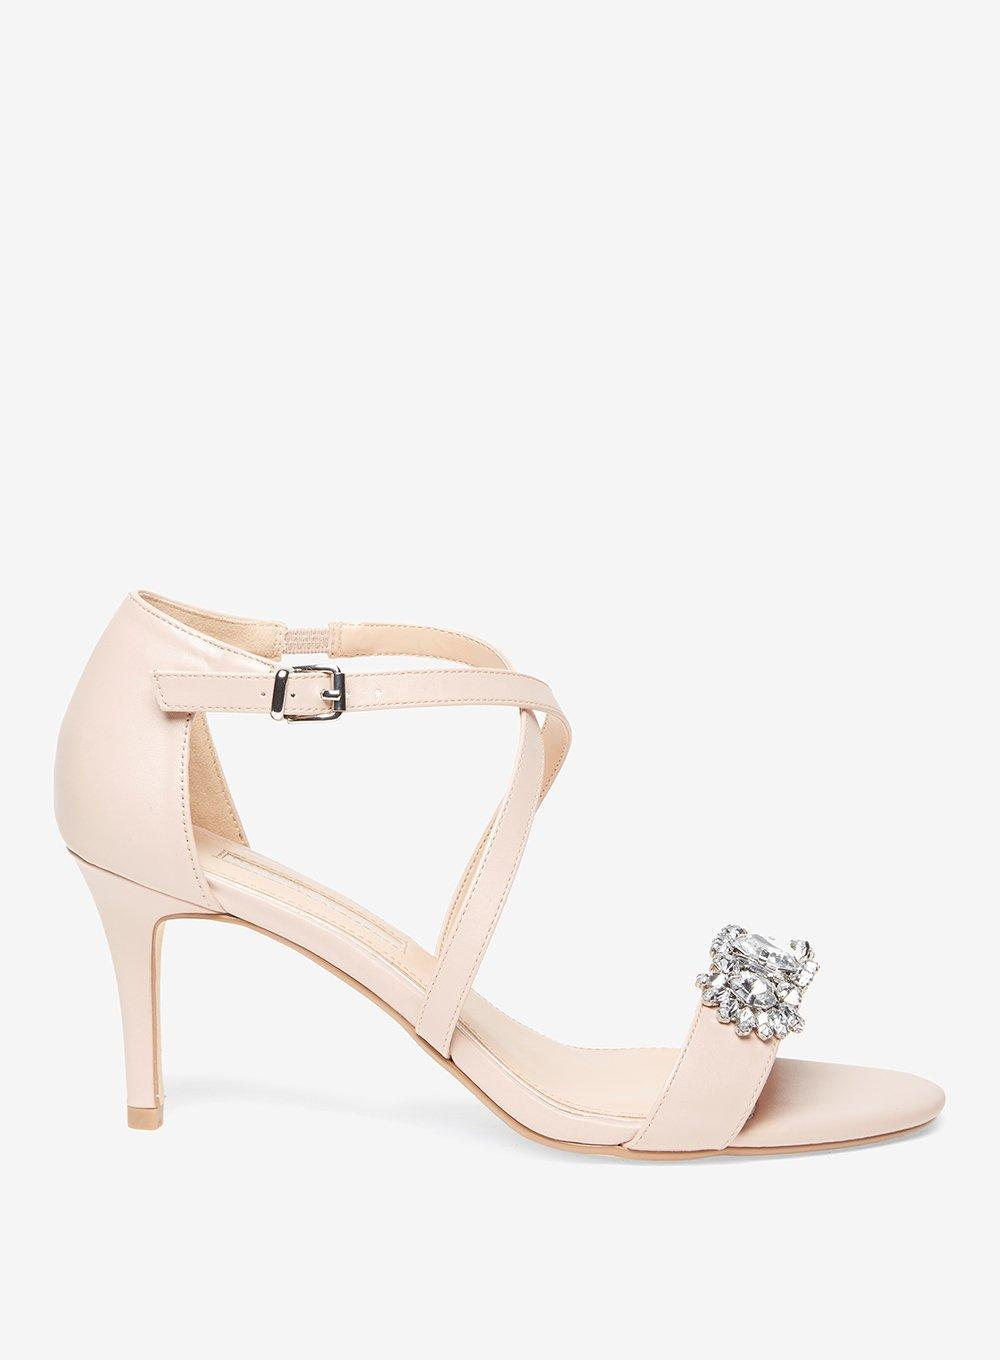 Dorothy Perkins Bliss Silver Embelished Stilettos outlet store locations low shipping buy cheap recommend pick a best cheap price I8SGuzm